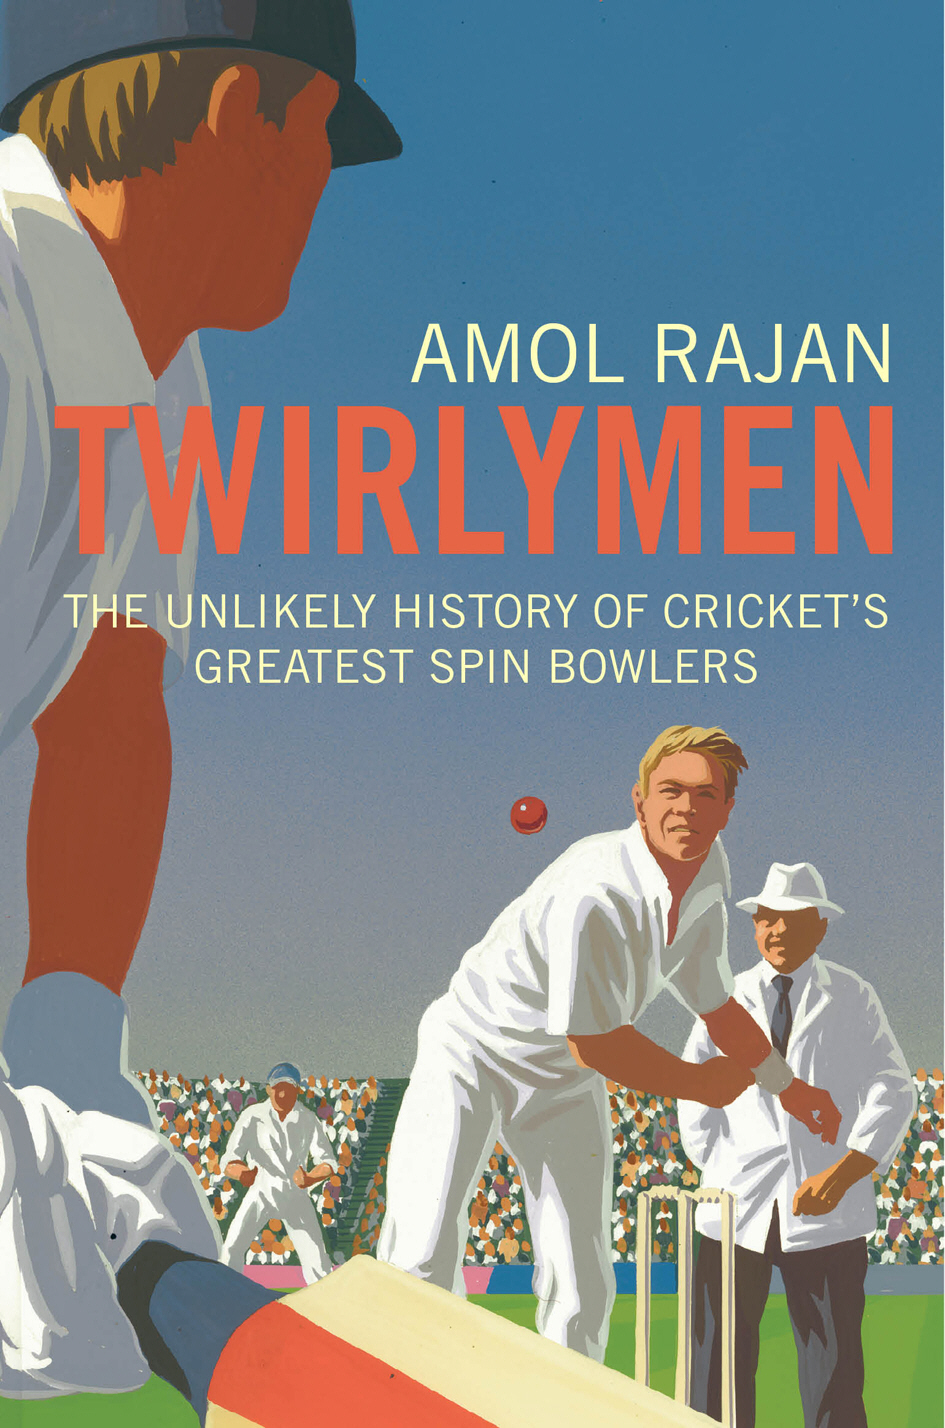 Twirlymen The Unlikely History of Cricket's Greatest Spin Bowlers